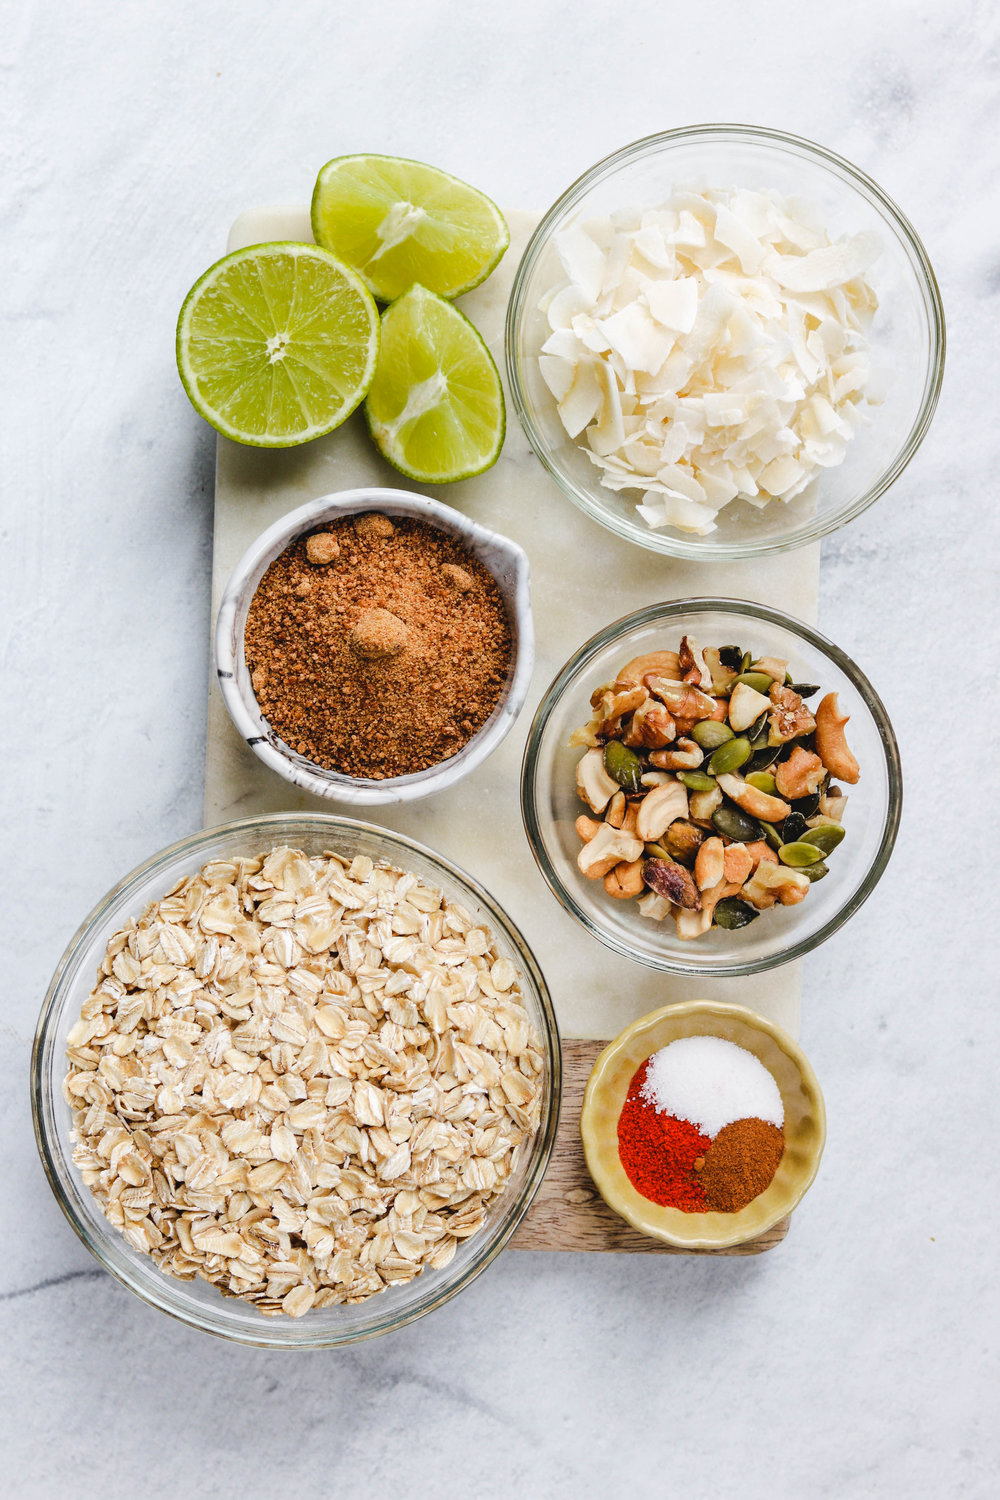 Sweet & Savoury Chili Lime Granola